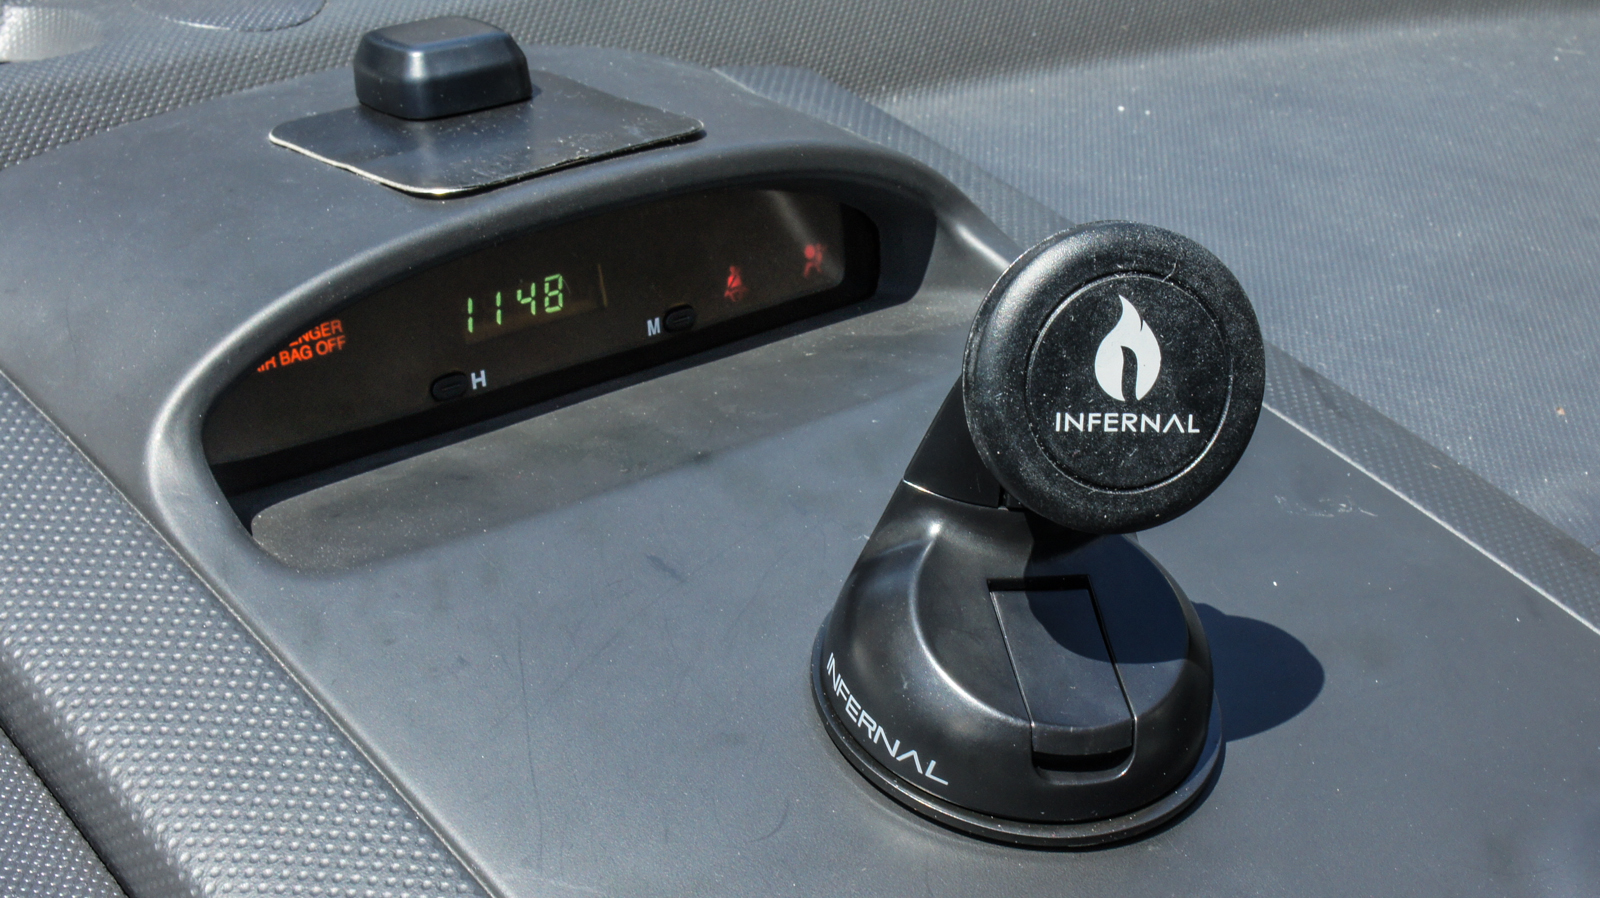 Infernal Innovations Magnetic smartphone mount